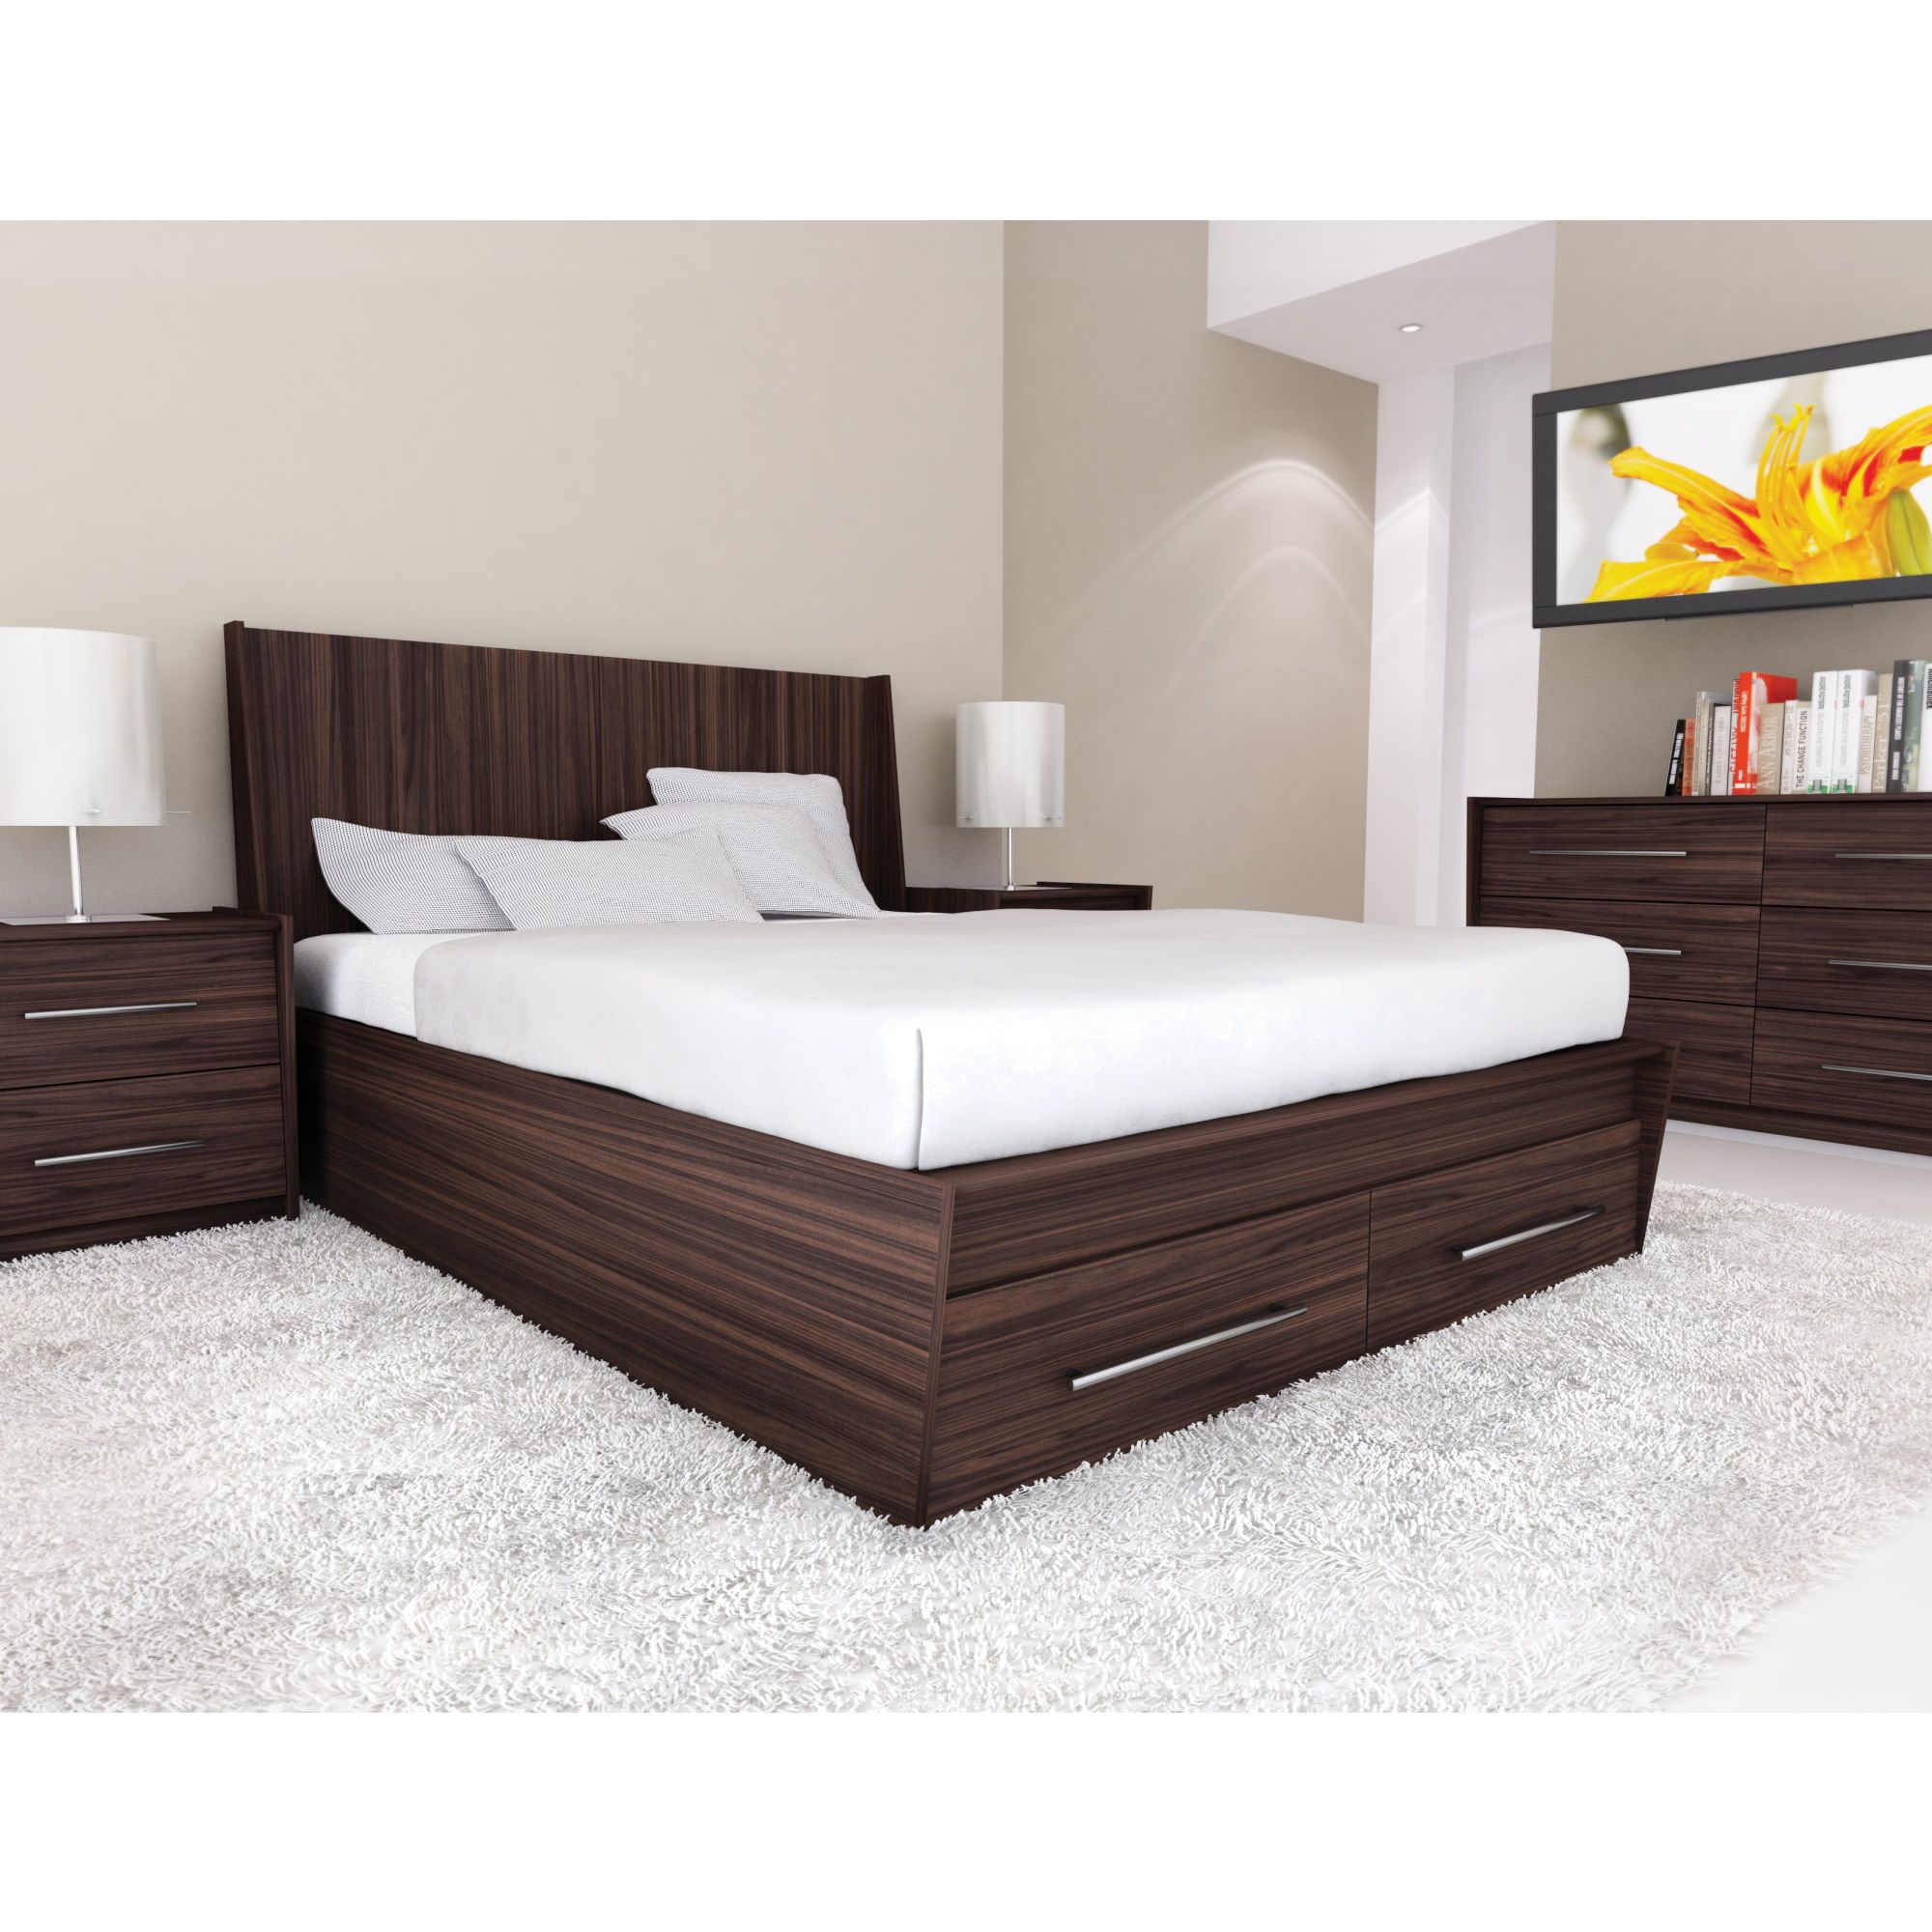 Bed designs for your comfortable bedroom interior design for Bedroom sets with mattress